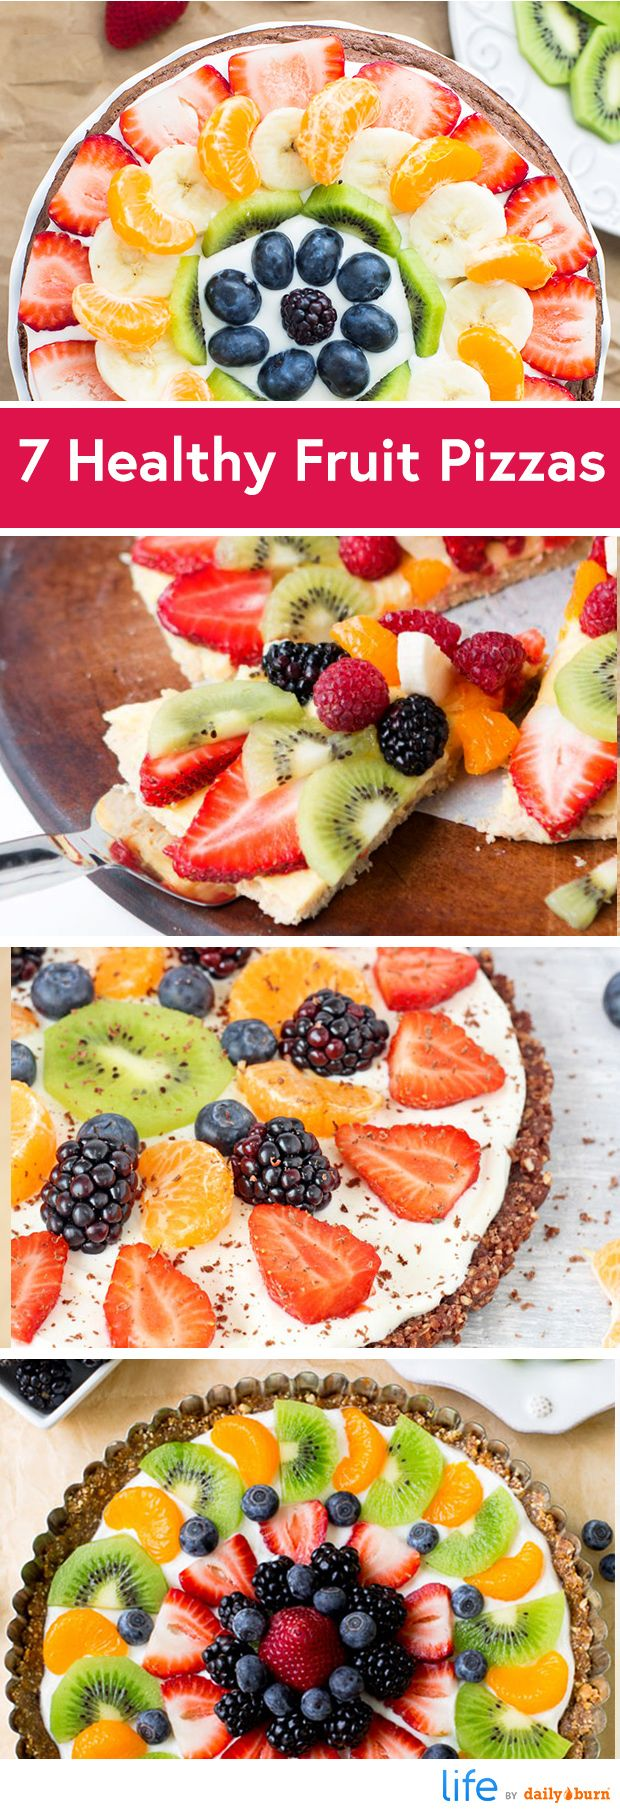 fruit pizza recipe healthy fruit compote